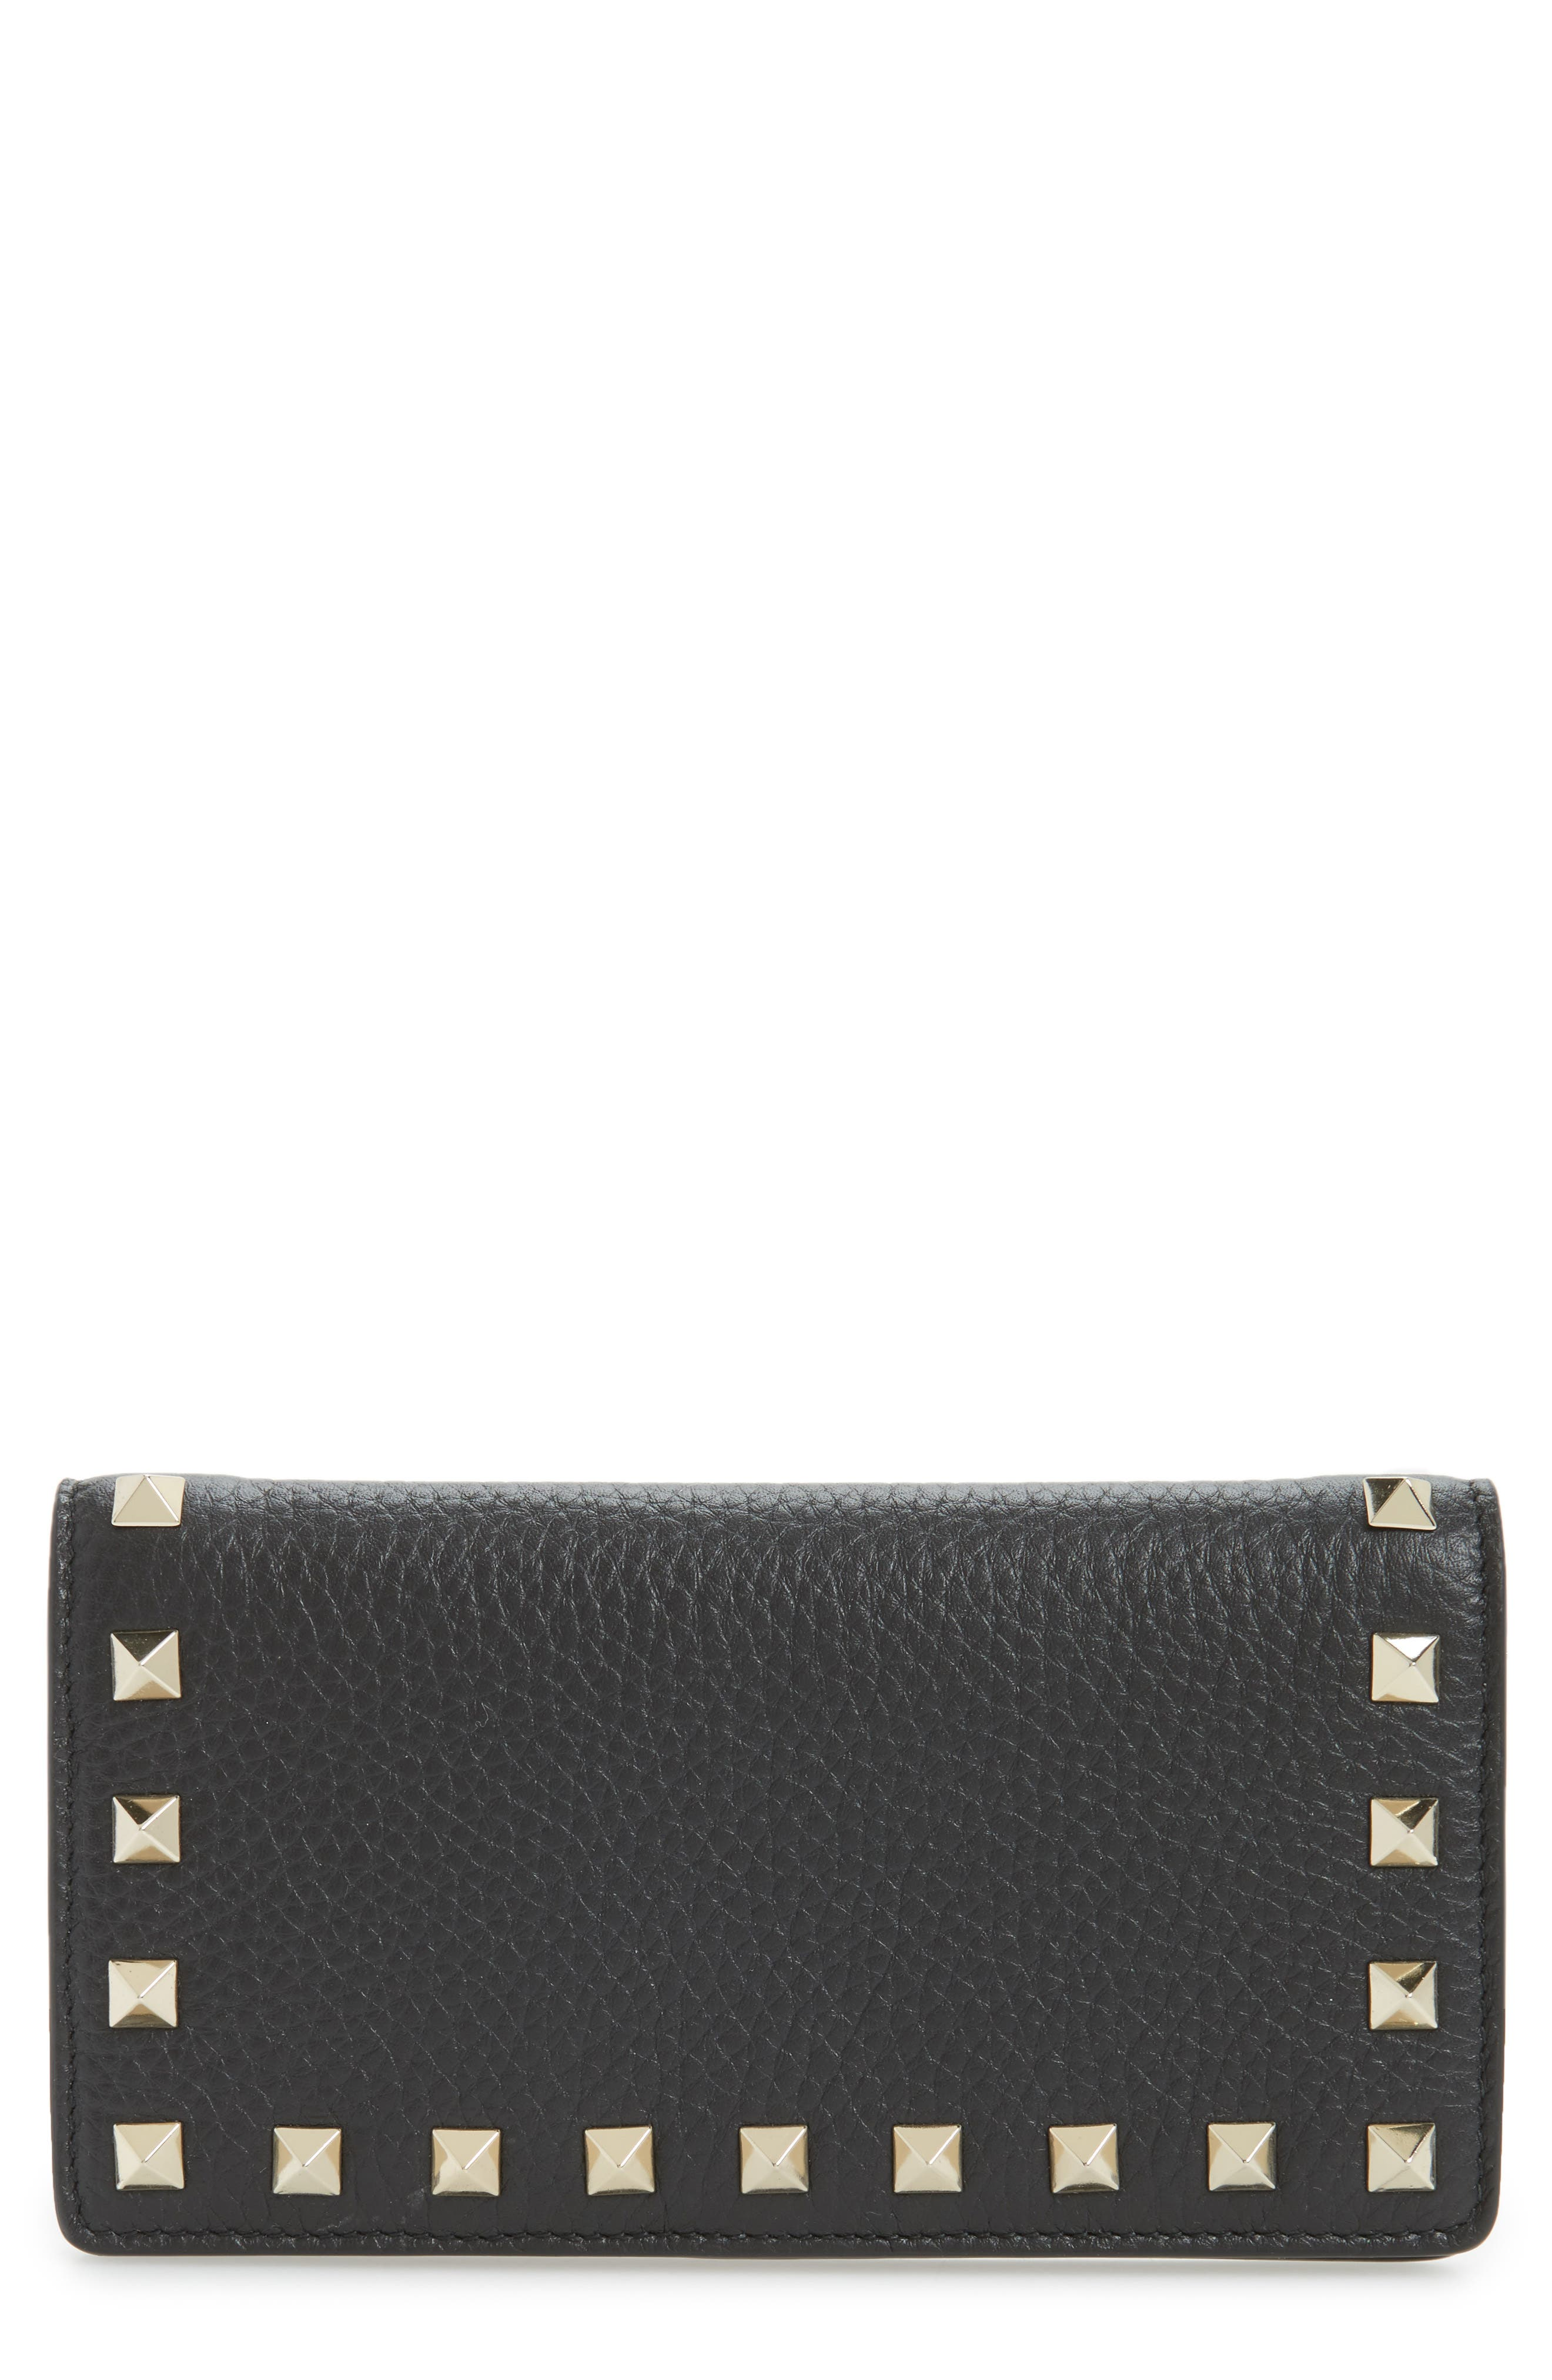 Rockstud Calfskin Leather Wallet,                             Main thumbnail 1, color,                             Nero